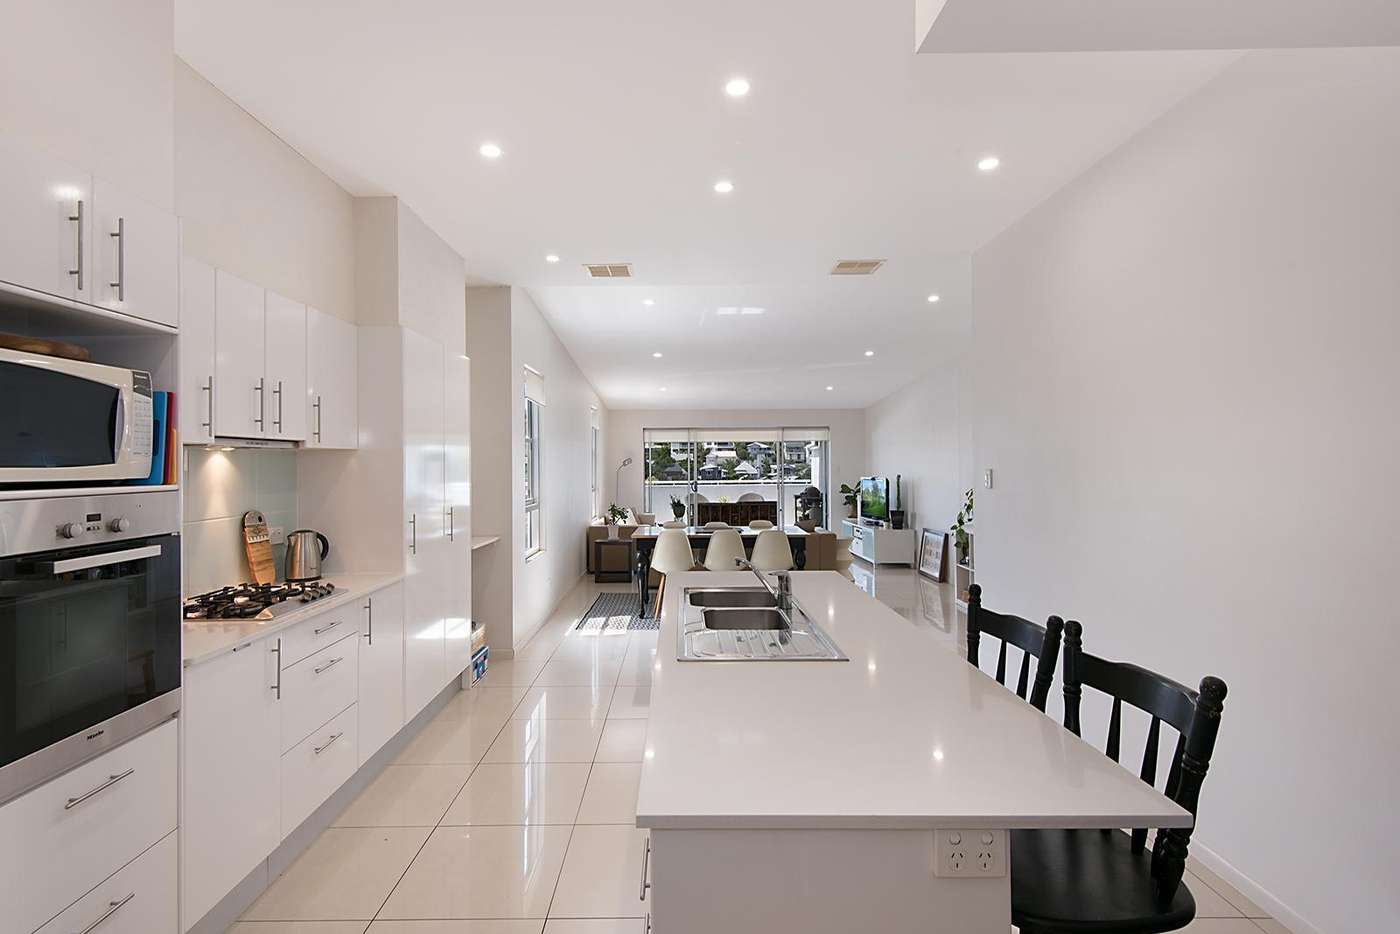 Main view of Homely apartment listing, 1/209 Given Terrace, Paddington QLD 4064